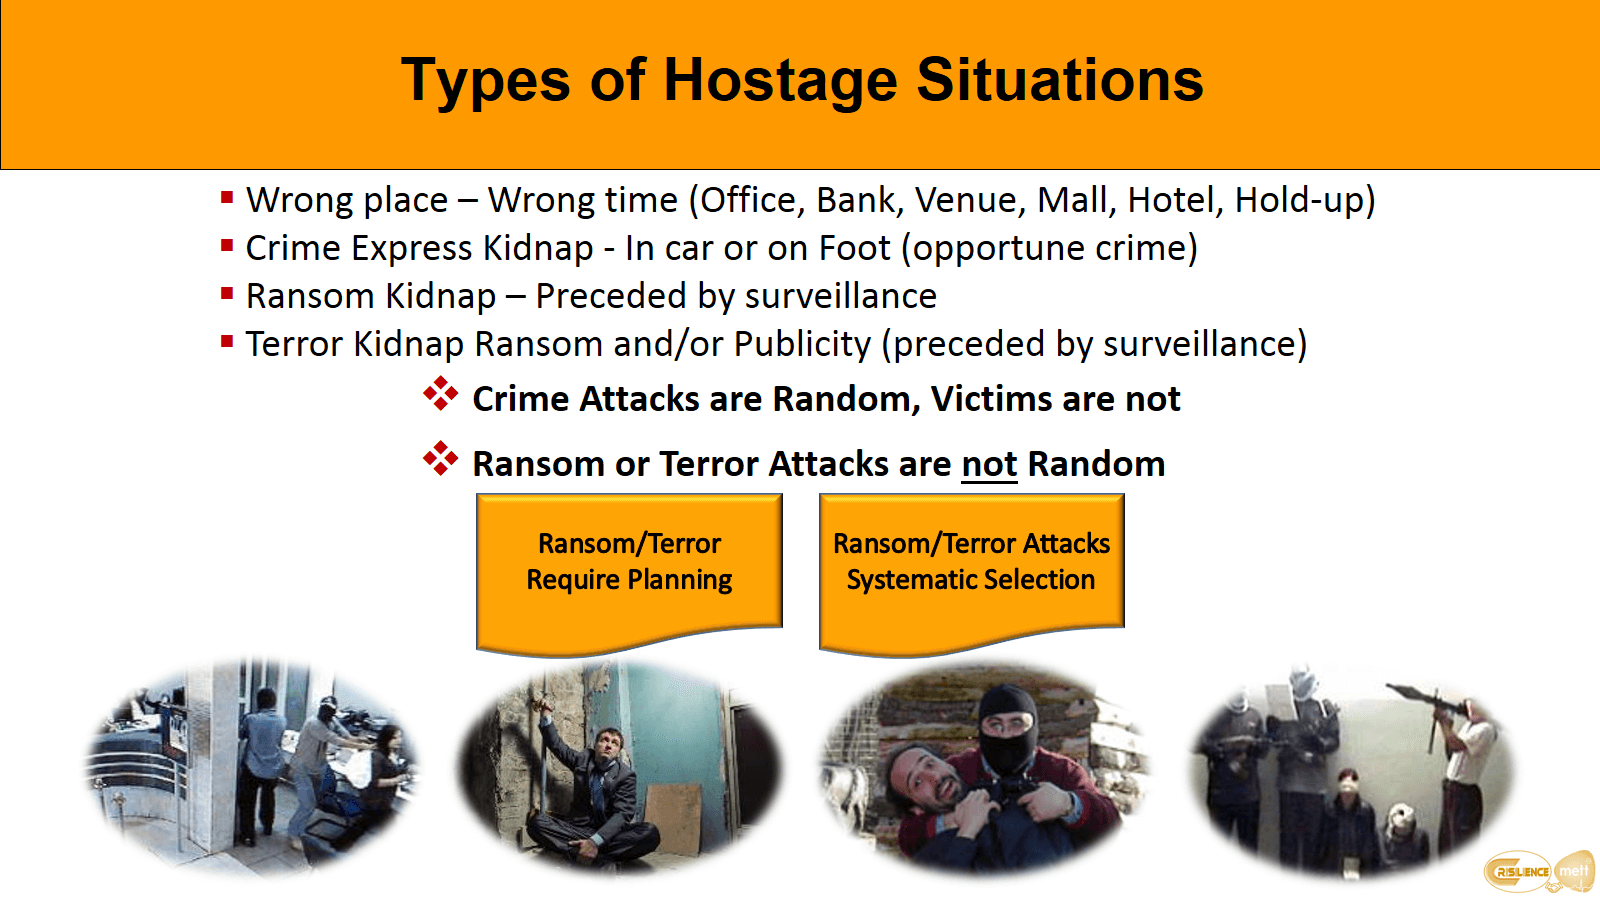 CIMAT slide 14 Hostage awareness types of situations